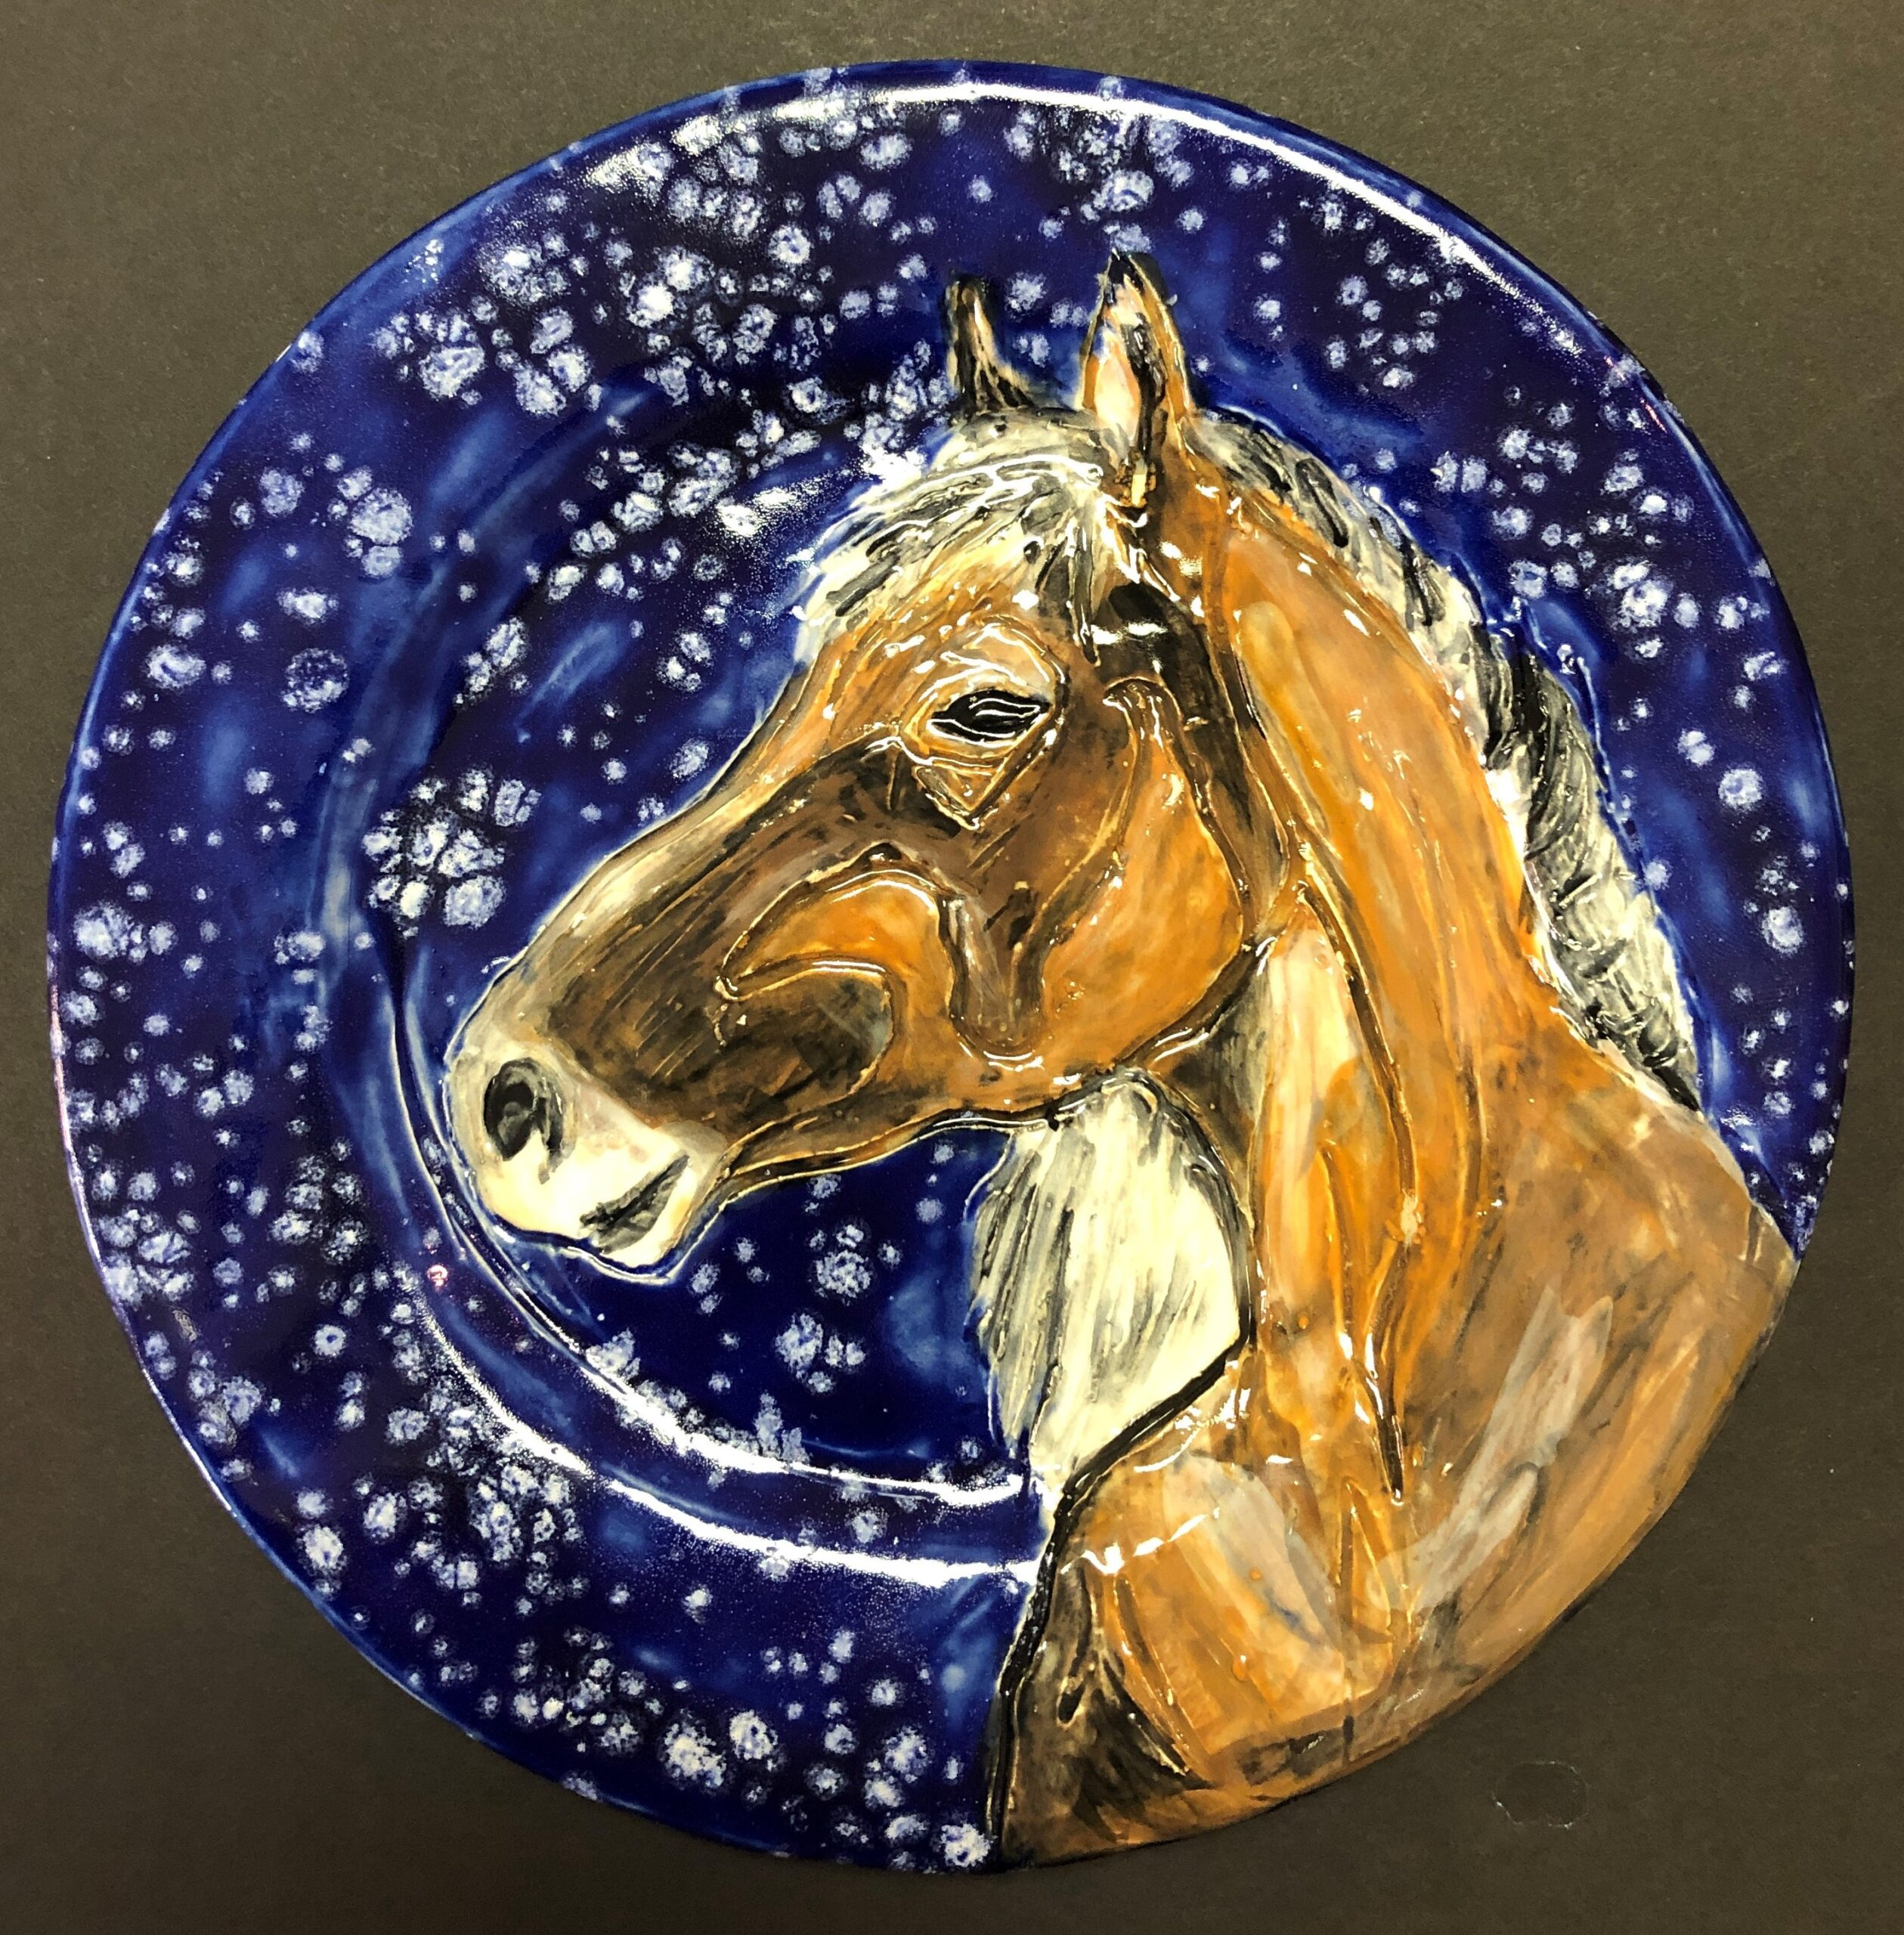 blue wall-mounted plate with a horse head on it